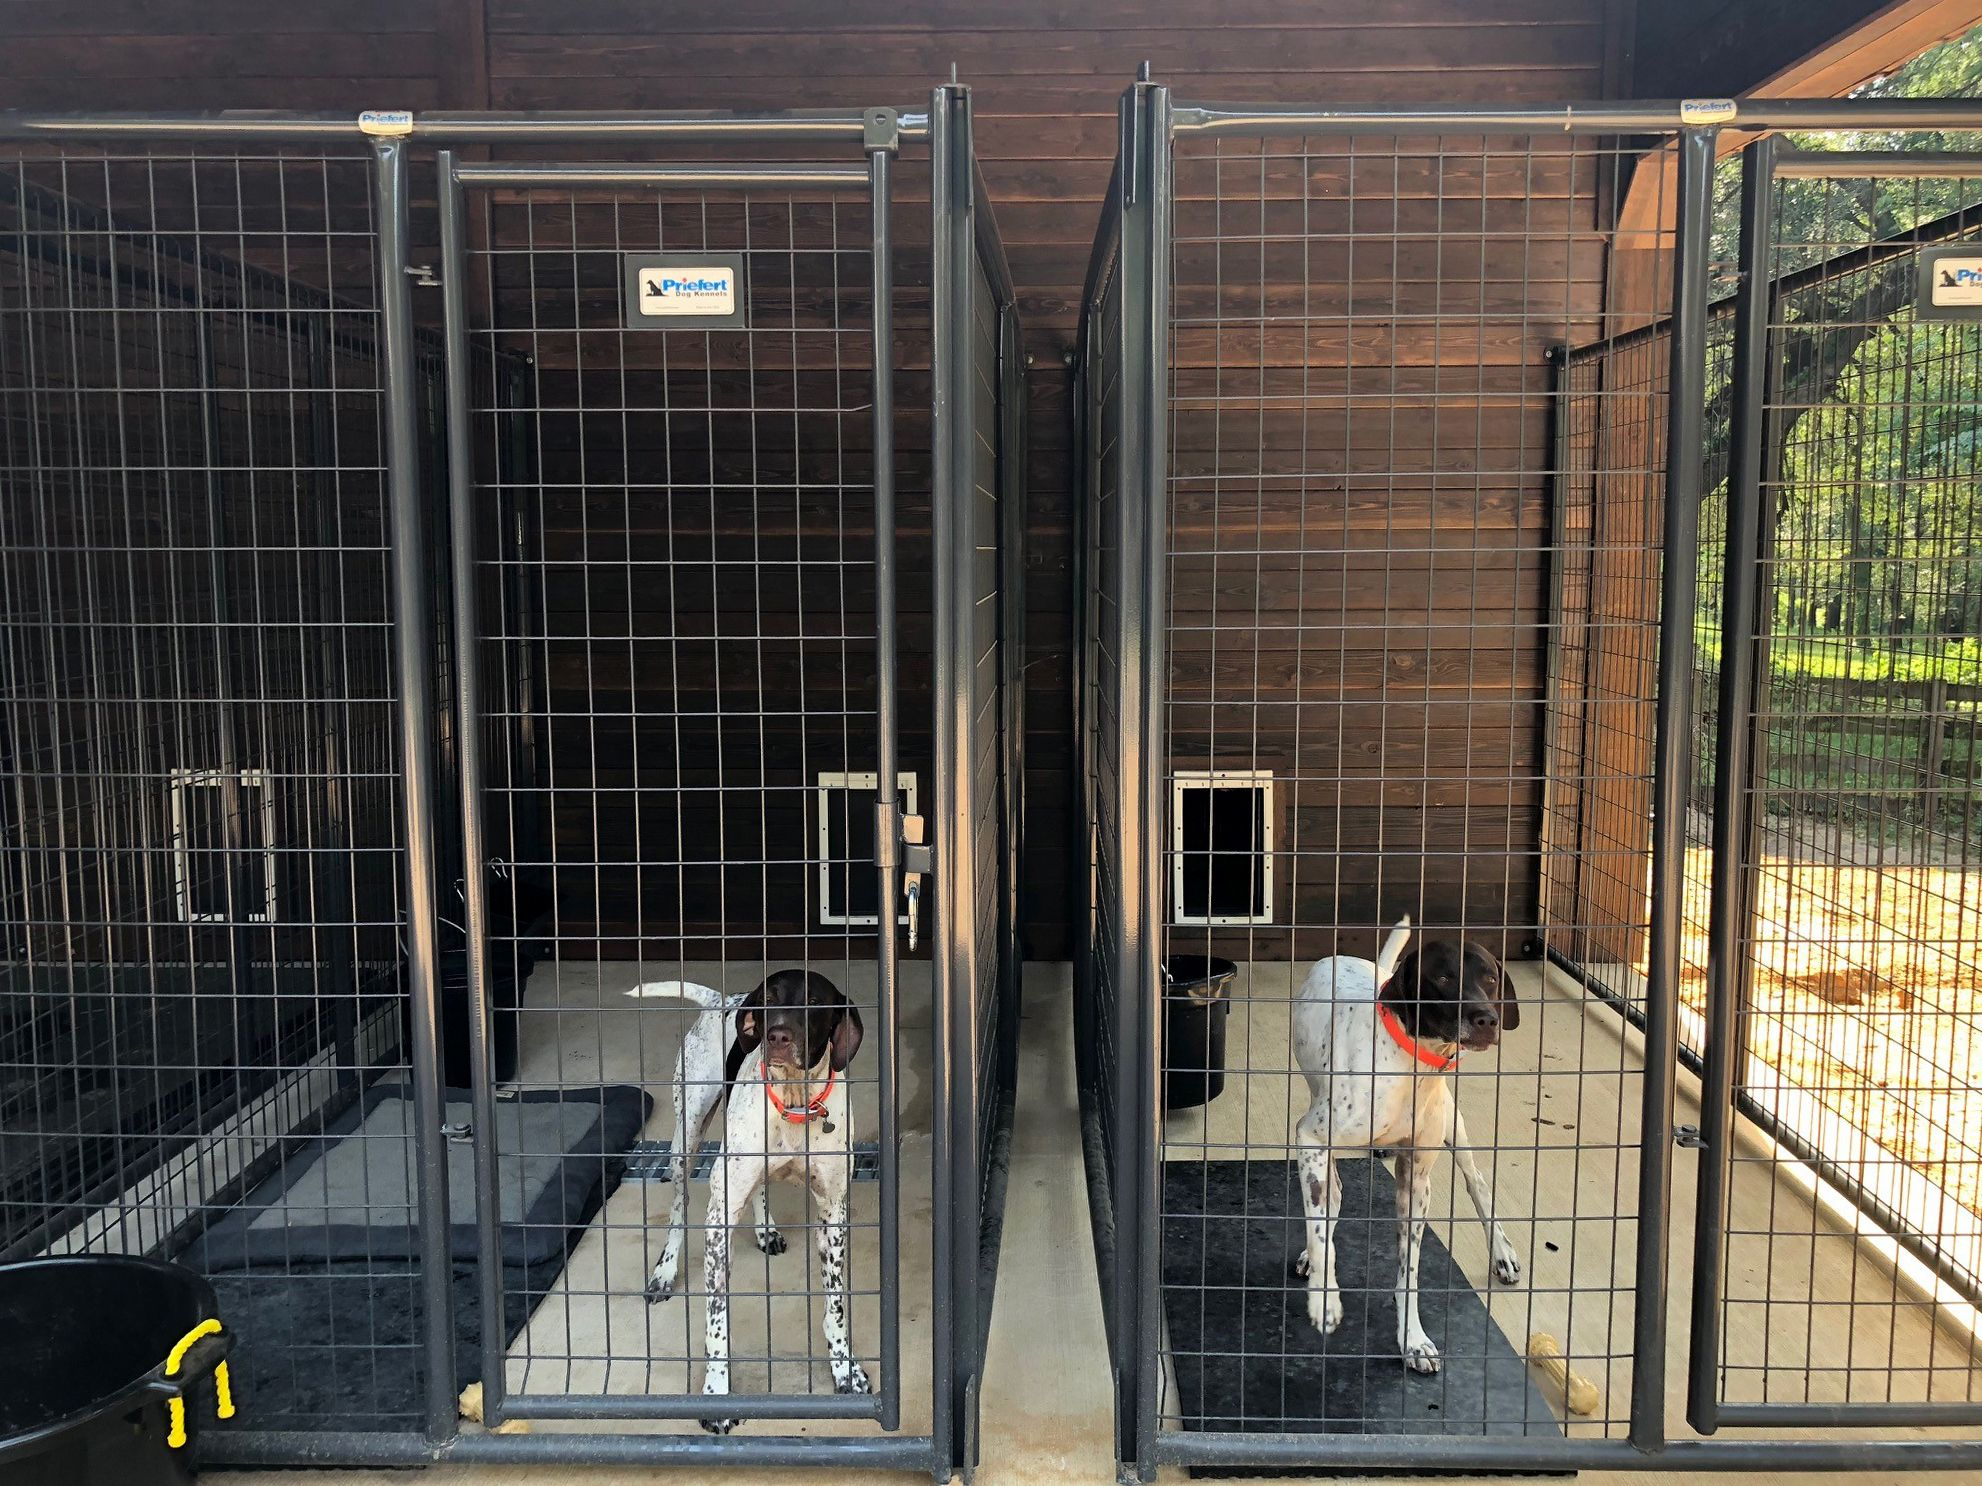 Outdoor Dog Kennels With Entrance To Indoor Barn Area Dog Kennel Outdoor Dog Breeding Kennels Dog Boarding Facility